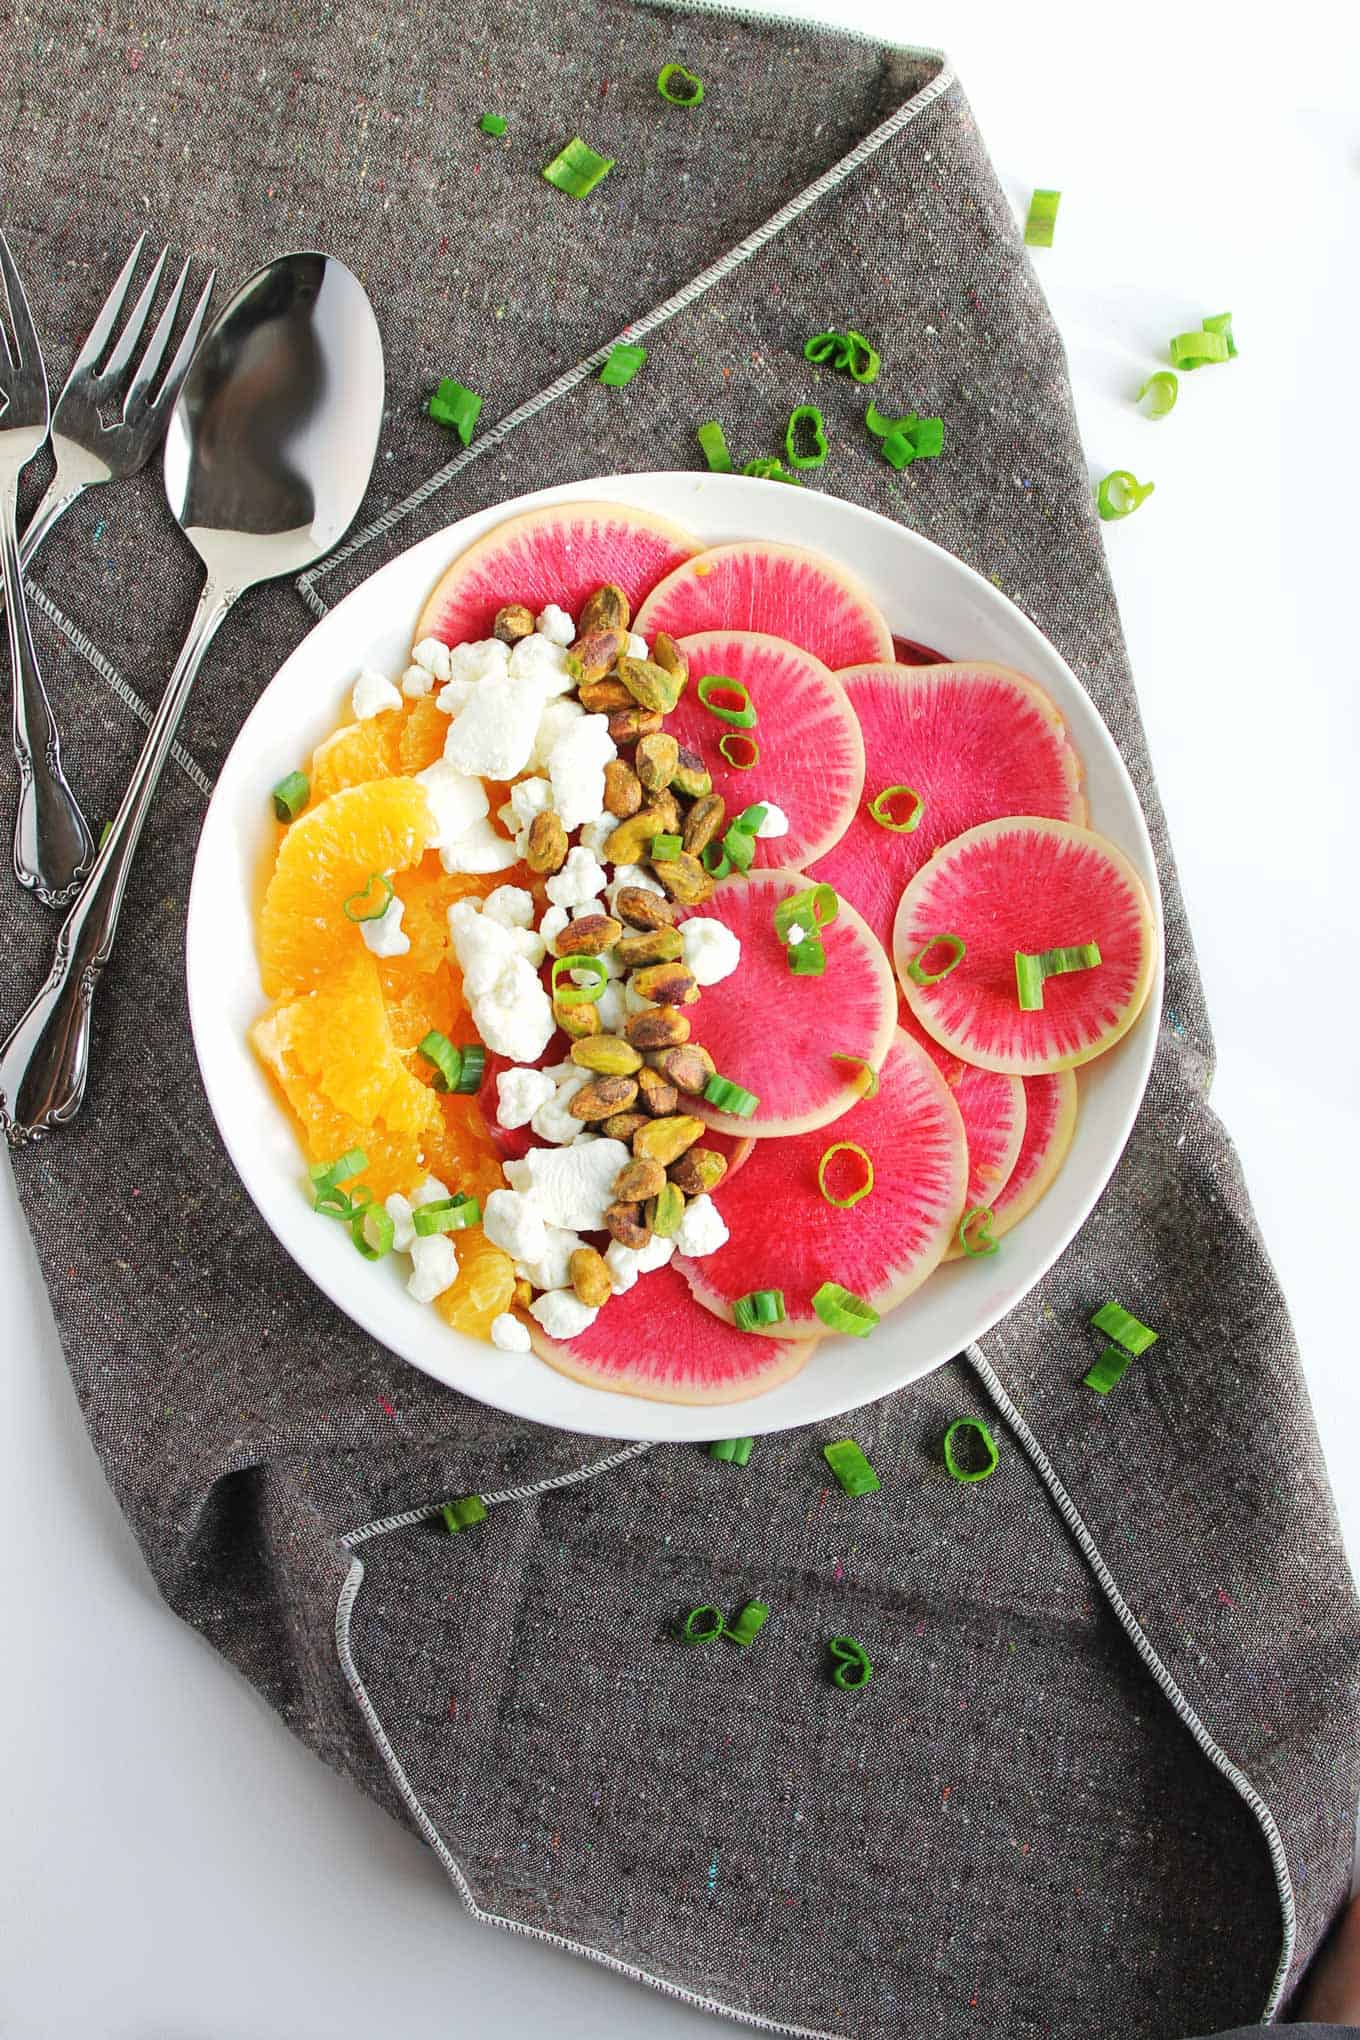 An absolutely gorgeous, simple salad! This watermelon radish orange salad with goat cheese and pistachios is bright, crunchy, and full of flavor. The perfect, colorful side dish for your table. Vegetarian, gluten free, delicious!